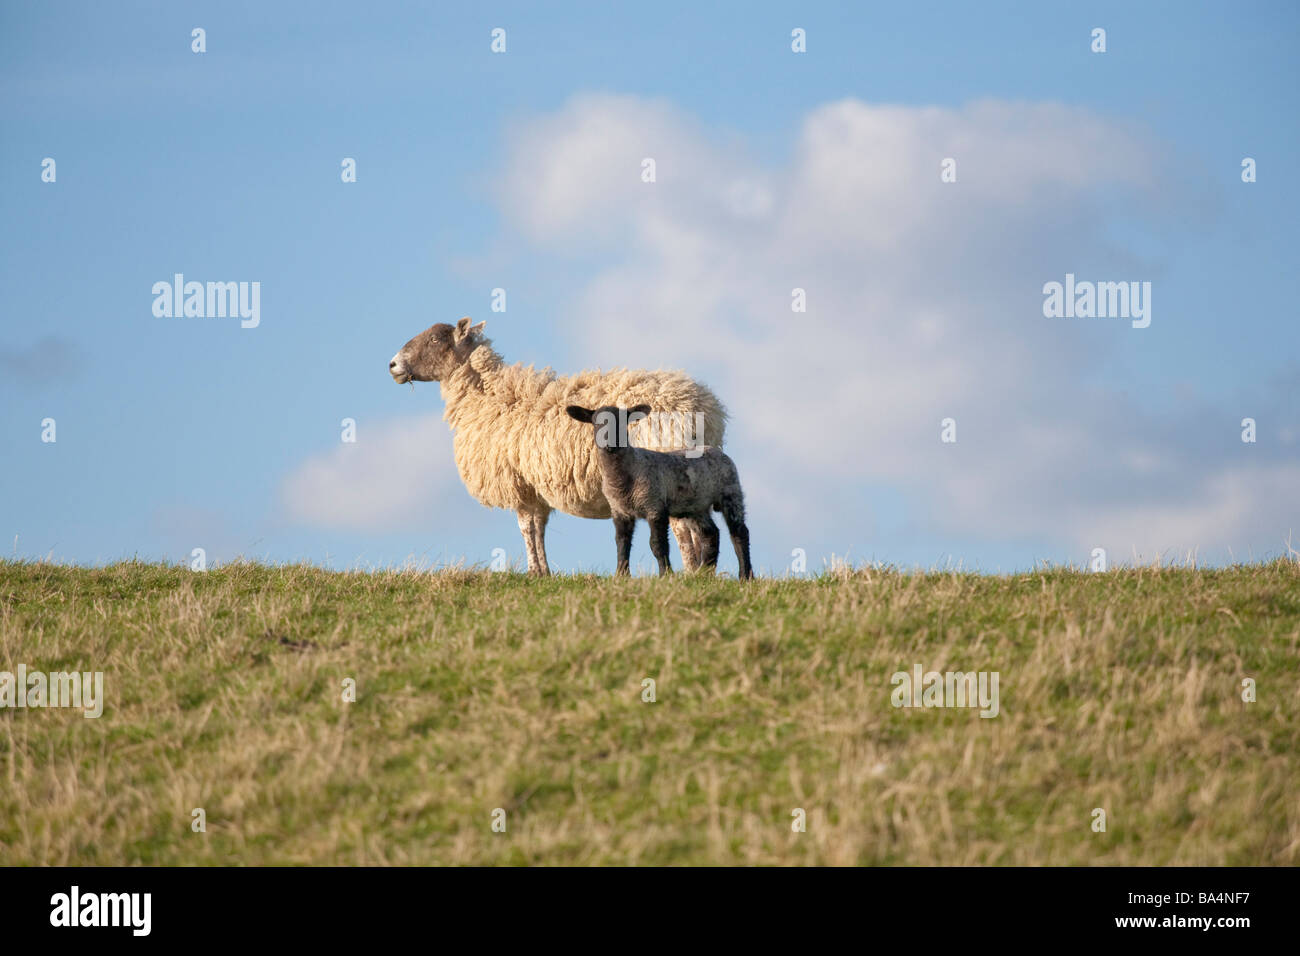 Ewe and lamb on the crest of a hill with a blue sky and cumulus clouds - Stock Image